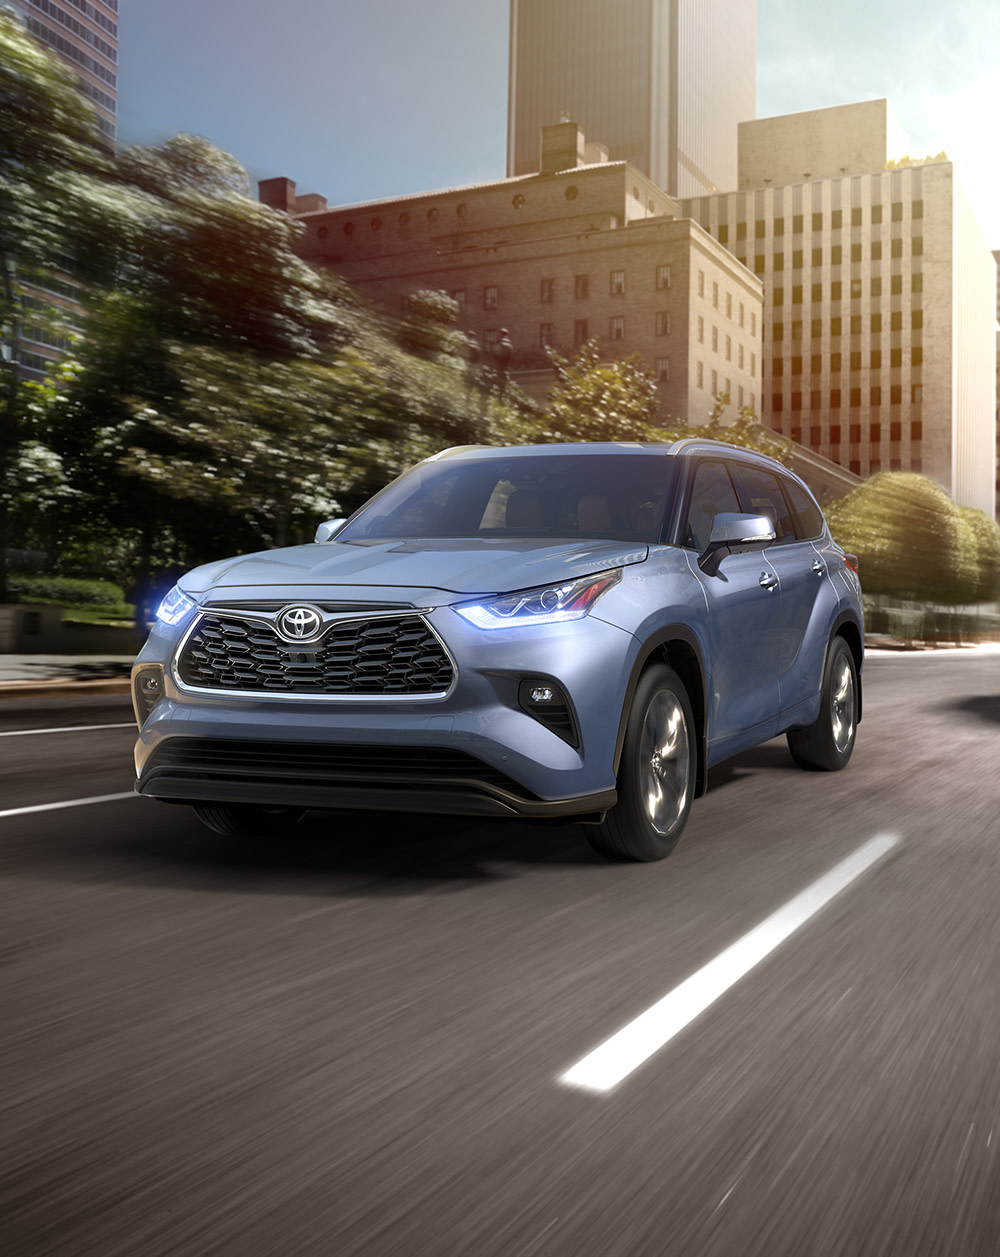 Comparison of the 2020 Toyota Highlander vs. the 2020 Honda Pilot at Tri County Toyota of Royersford | The 2020 Toyota Highlander Driving Through the City